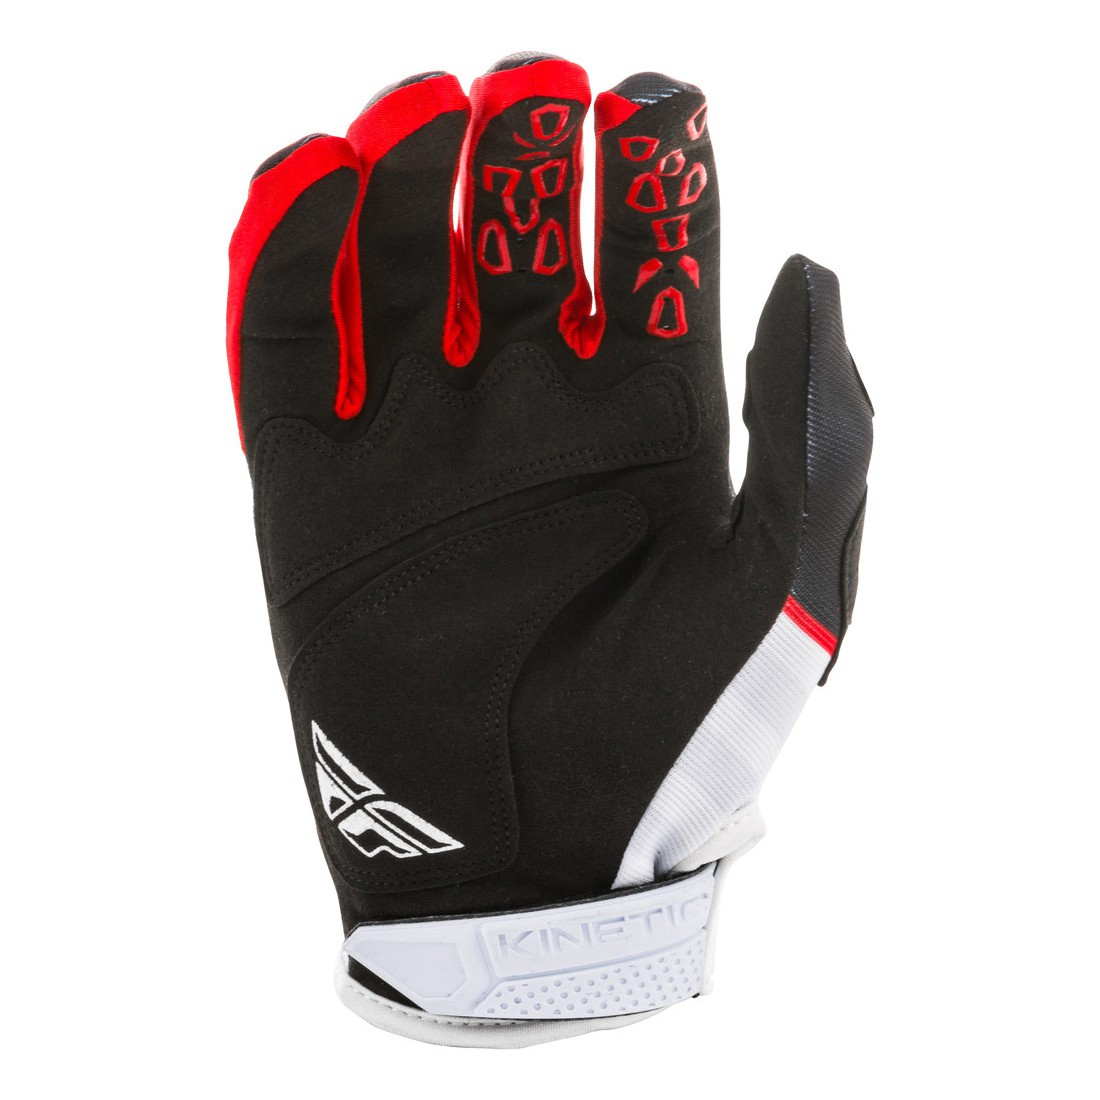 FLY KINETIC K120 2020 GLOVES